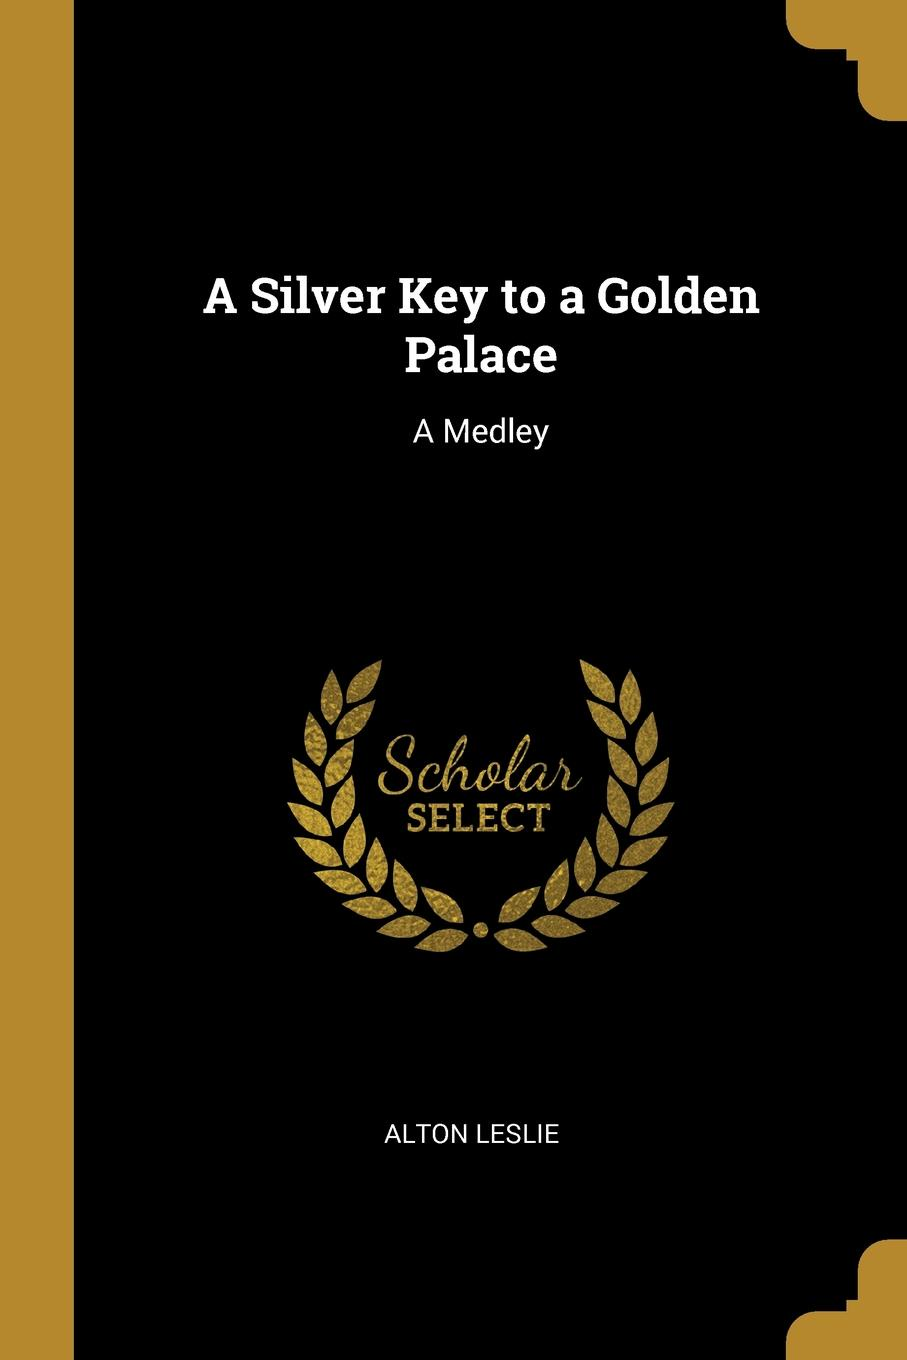 A Silver Key to a Golden Palace. A Medley